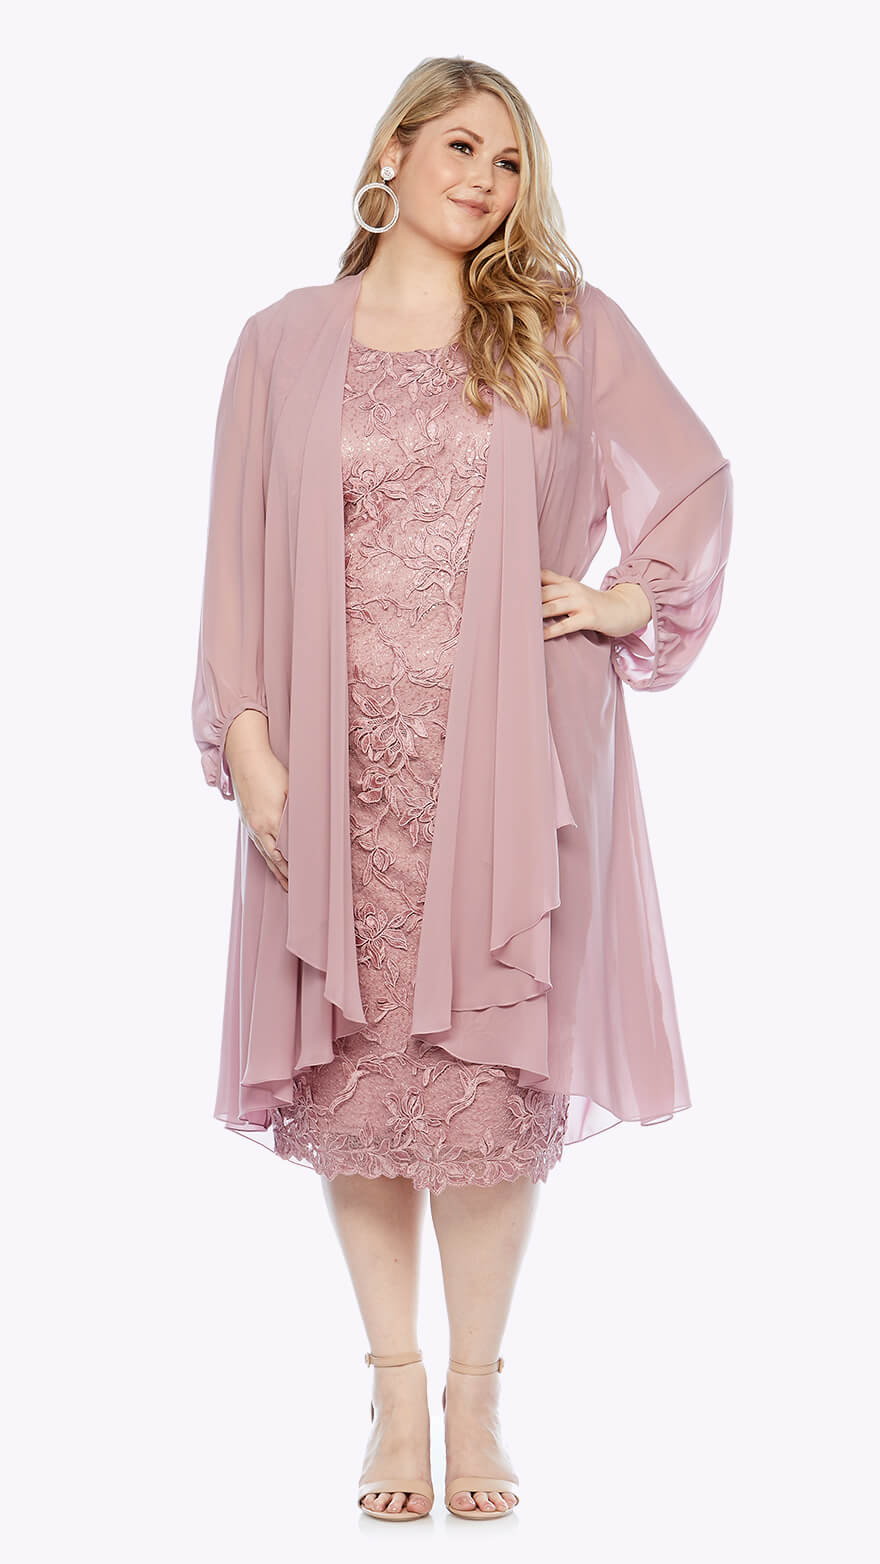 LJ0303 Embroidered lace dress with full-length chiffon jacket